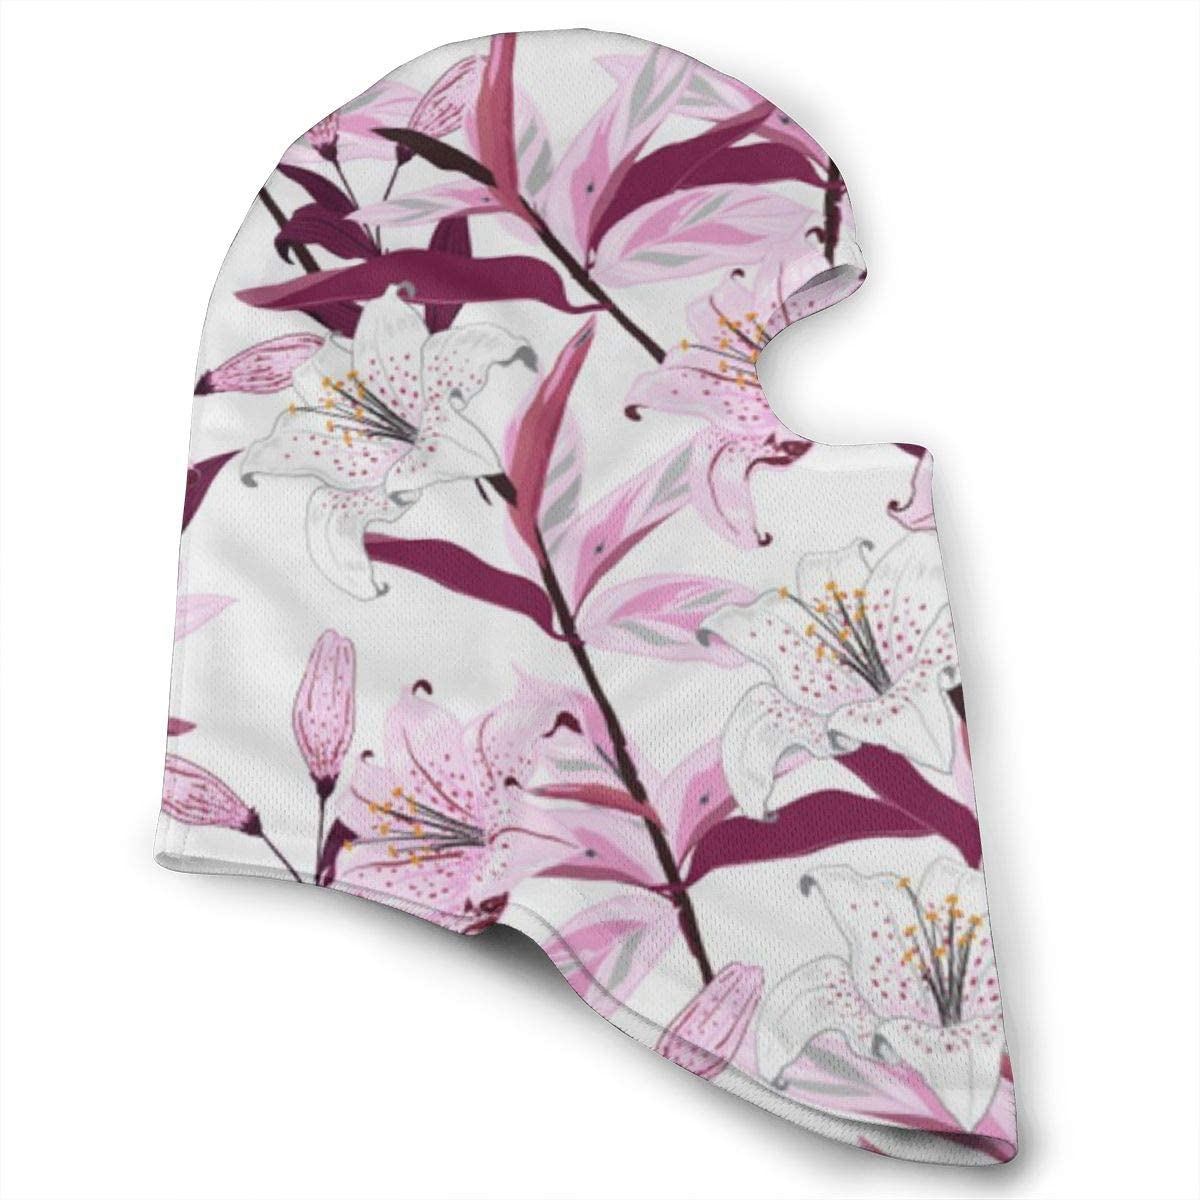 CAClifestyle Blooming Lily Flowers Pattern Unisex Windproof Balaclavas Full Face Mask Hood